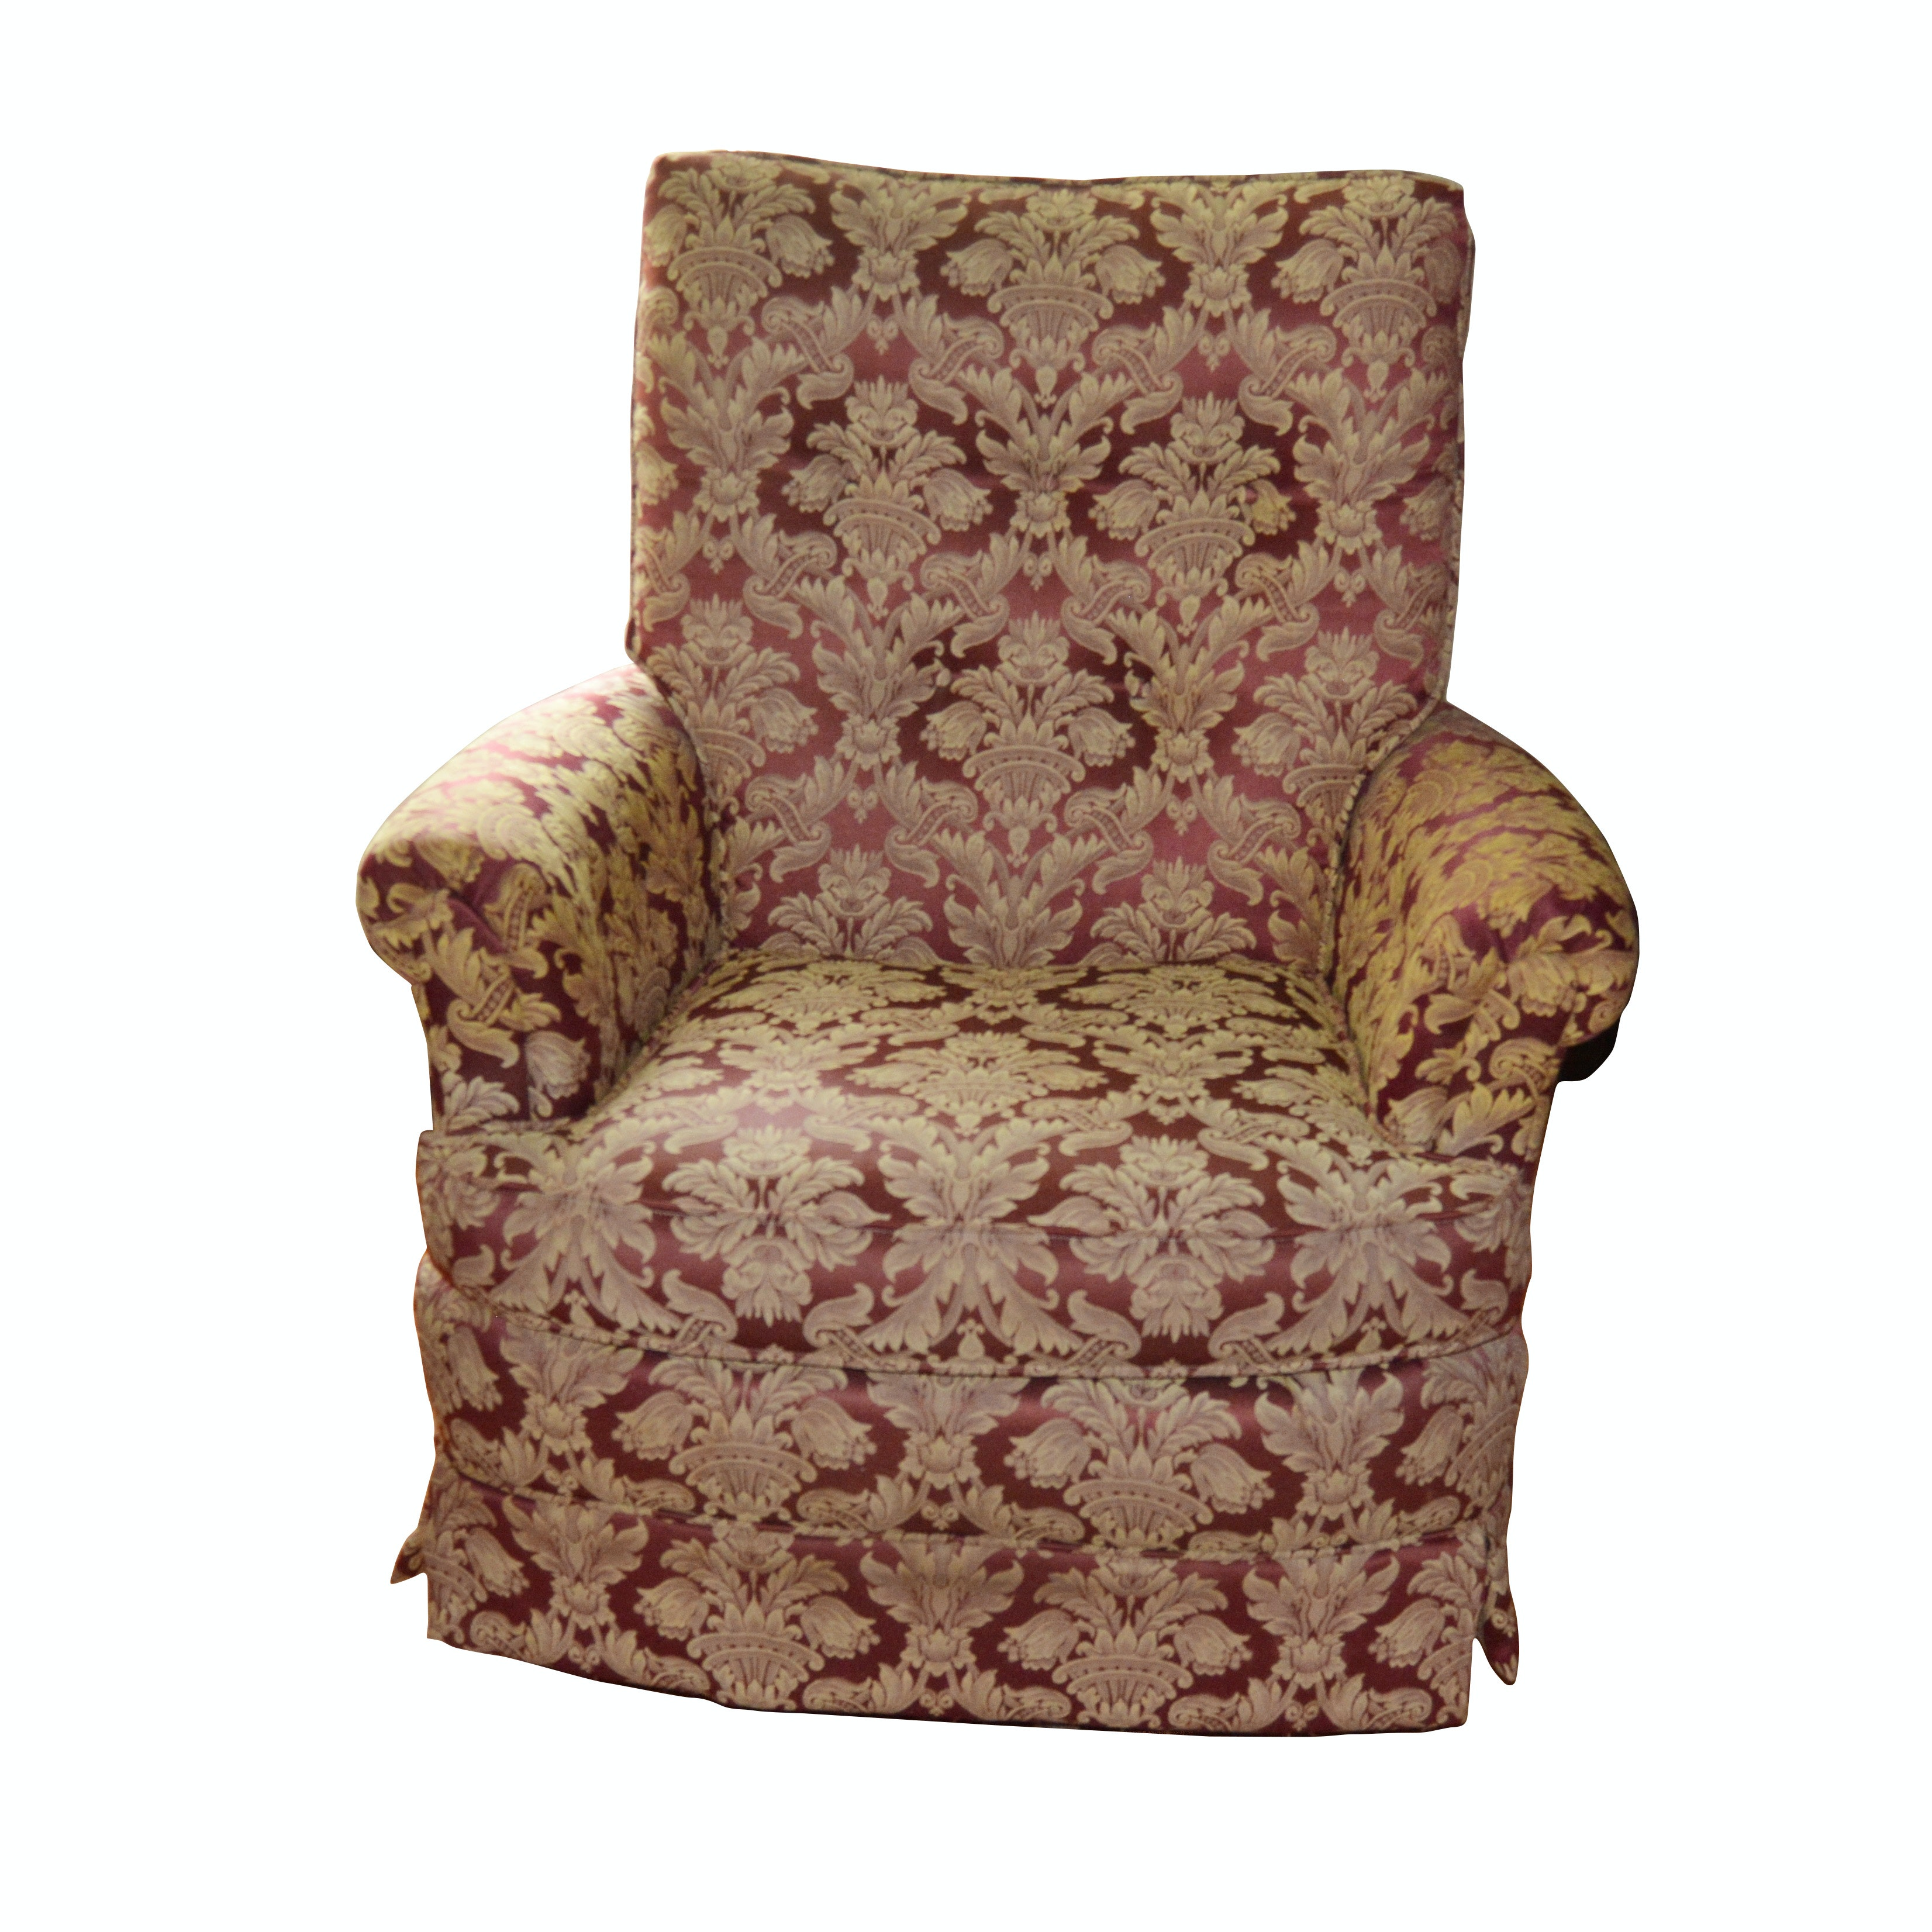 Upholstered Swivel Lounge Chair, Late 20th Century